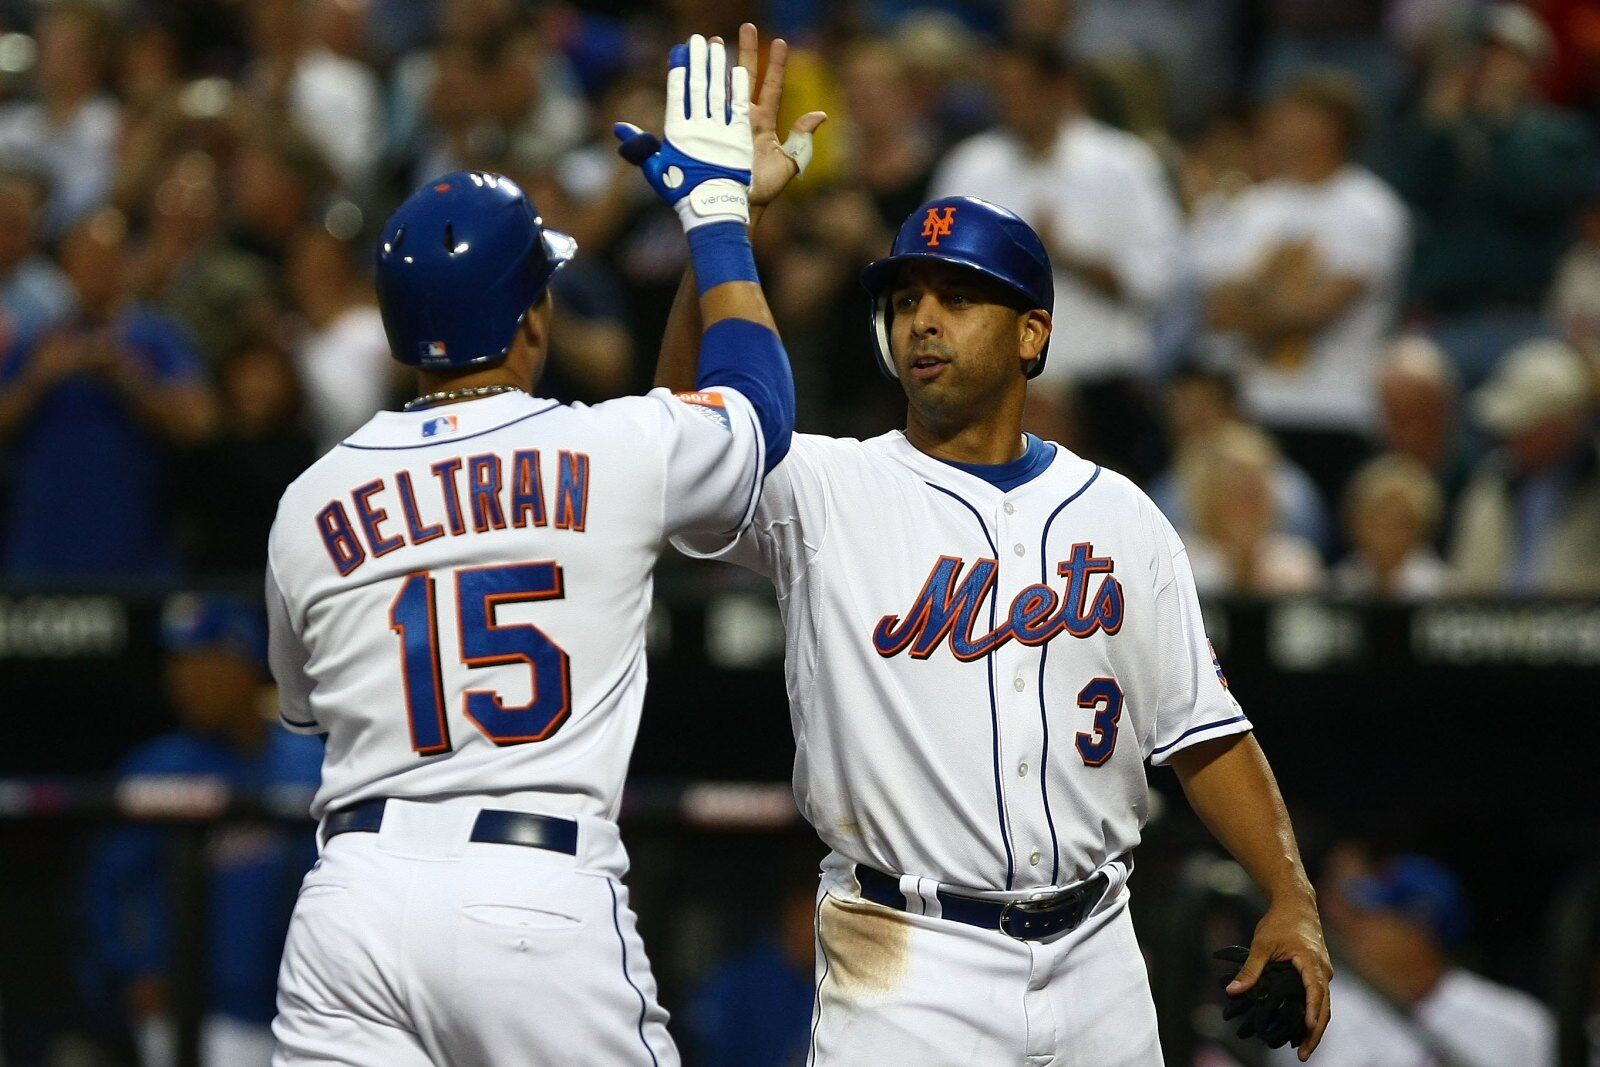 Yankees shouldn't be concerned about Carlos Beltran's contributions in 2019